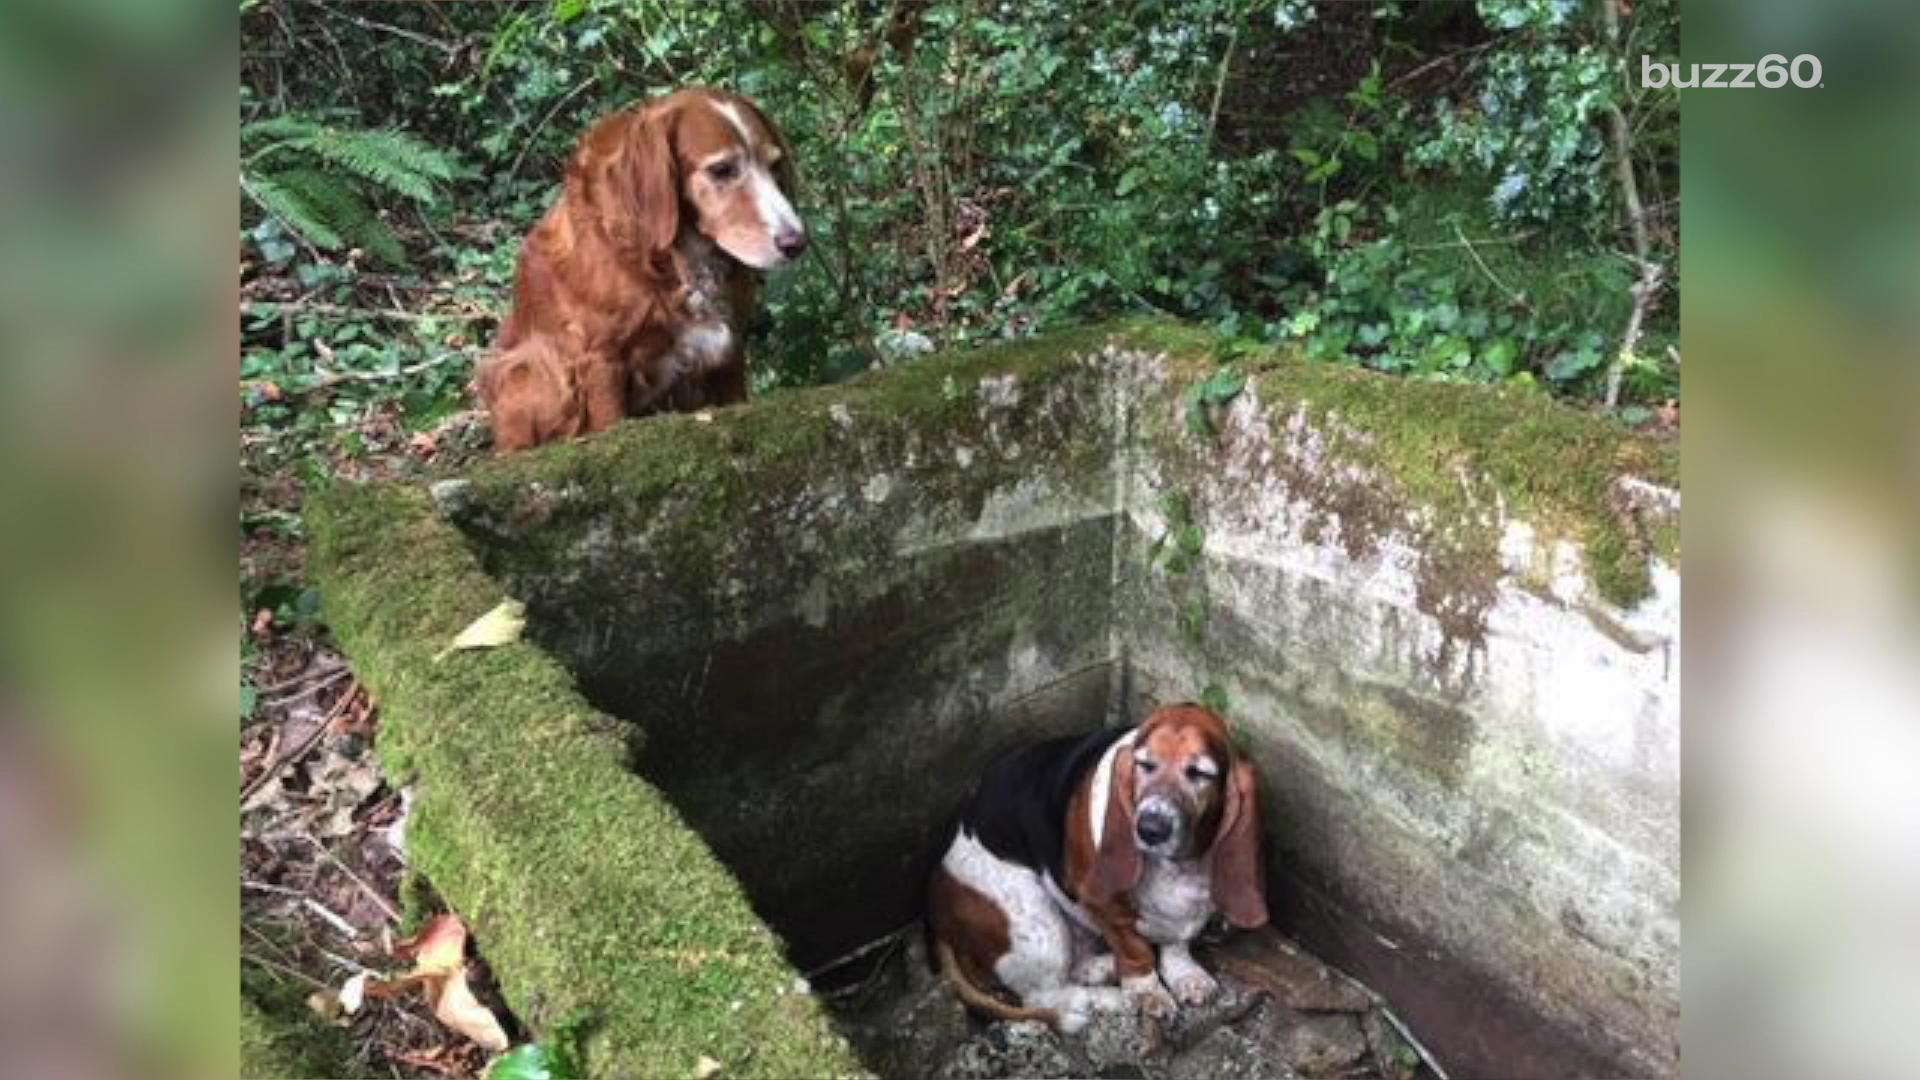 This Dog Stood Guard for Nearly a Week to Protect Its Friend Who Got Trapped in a Ravine